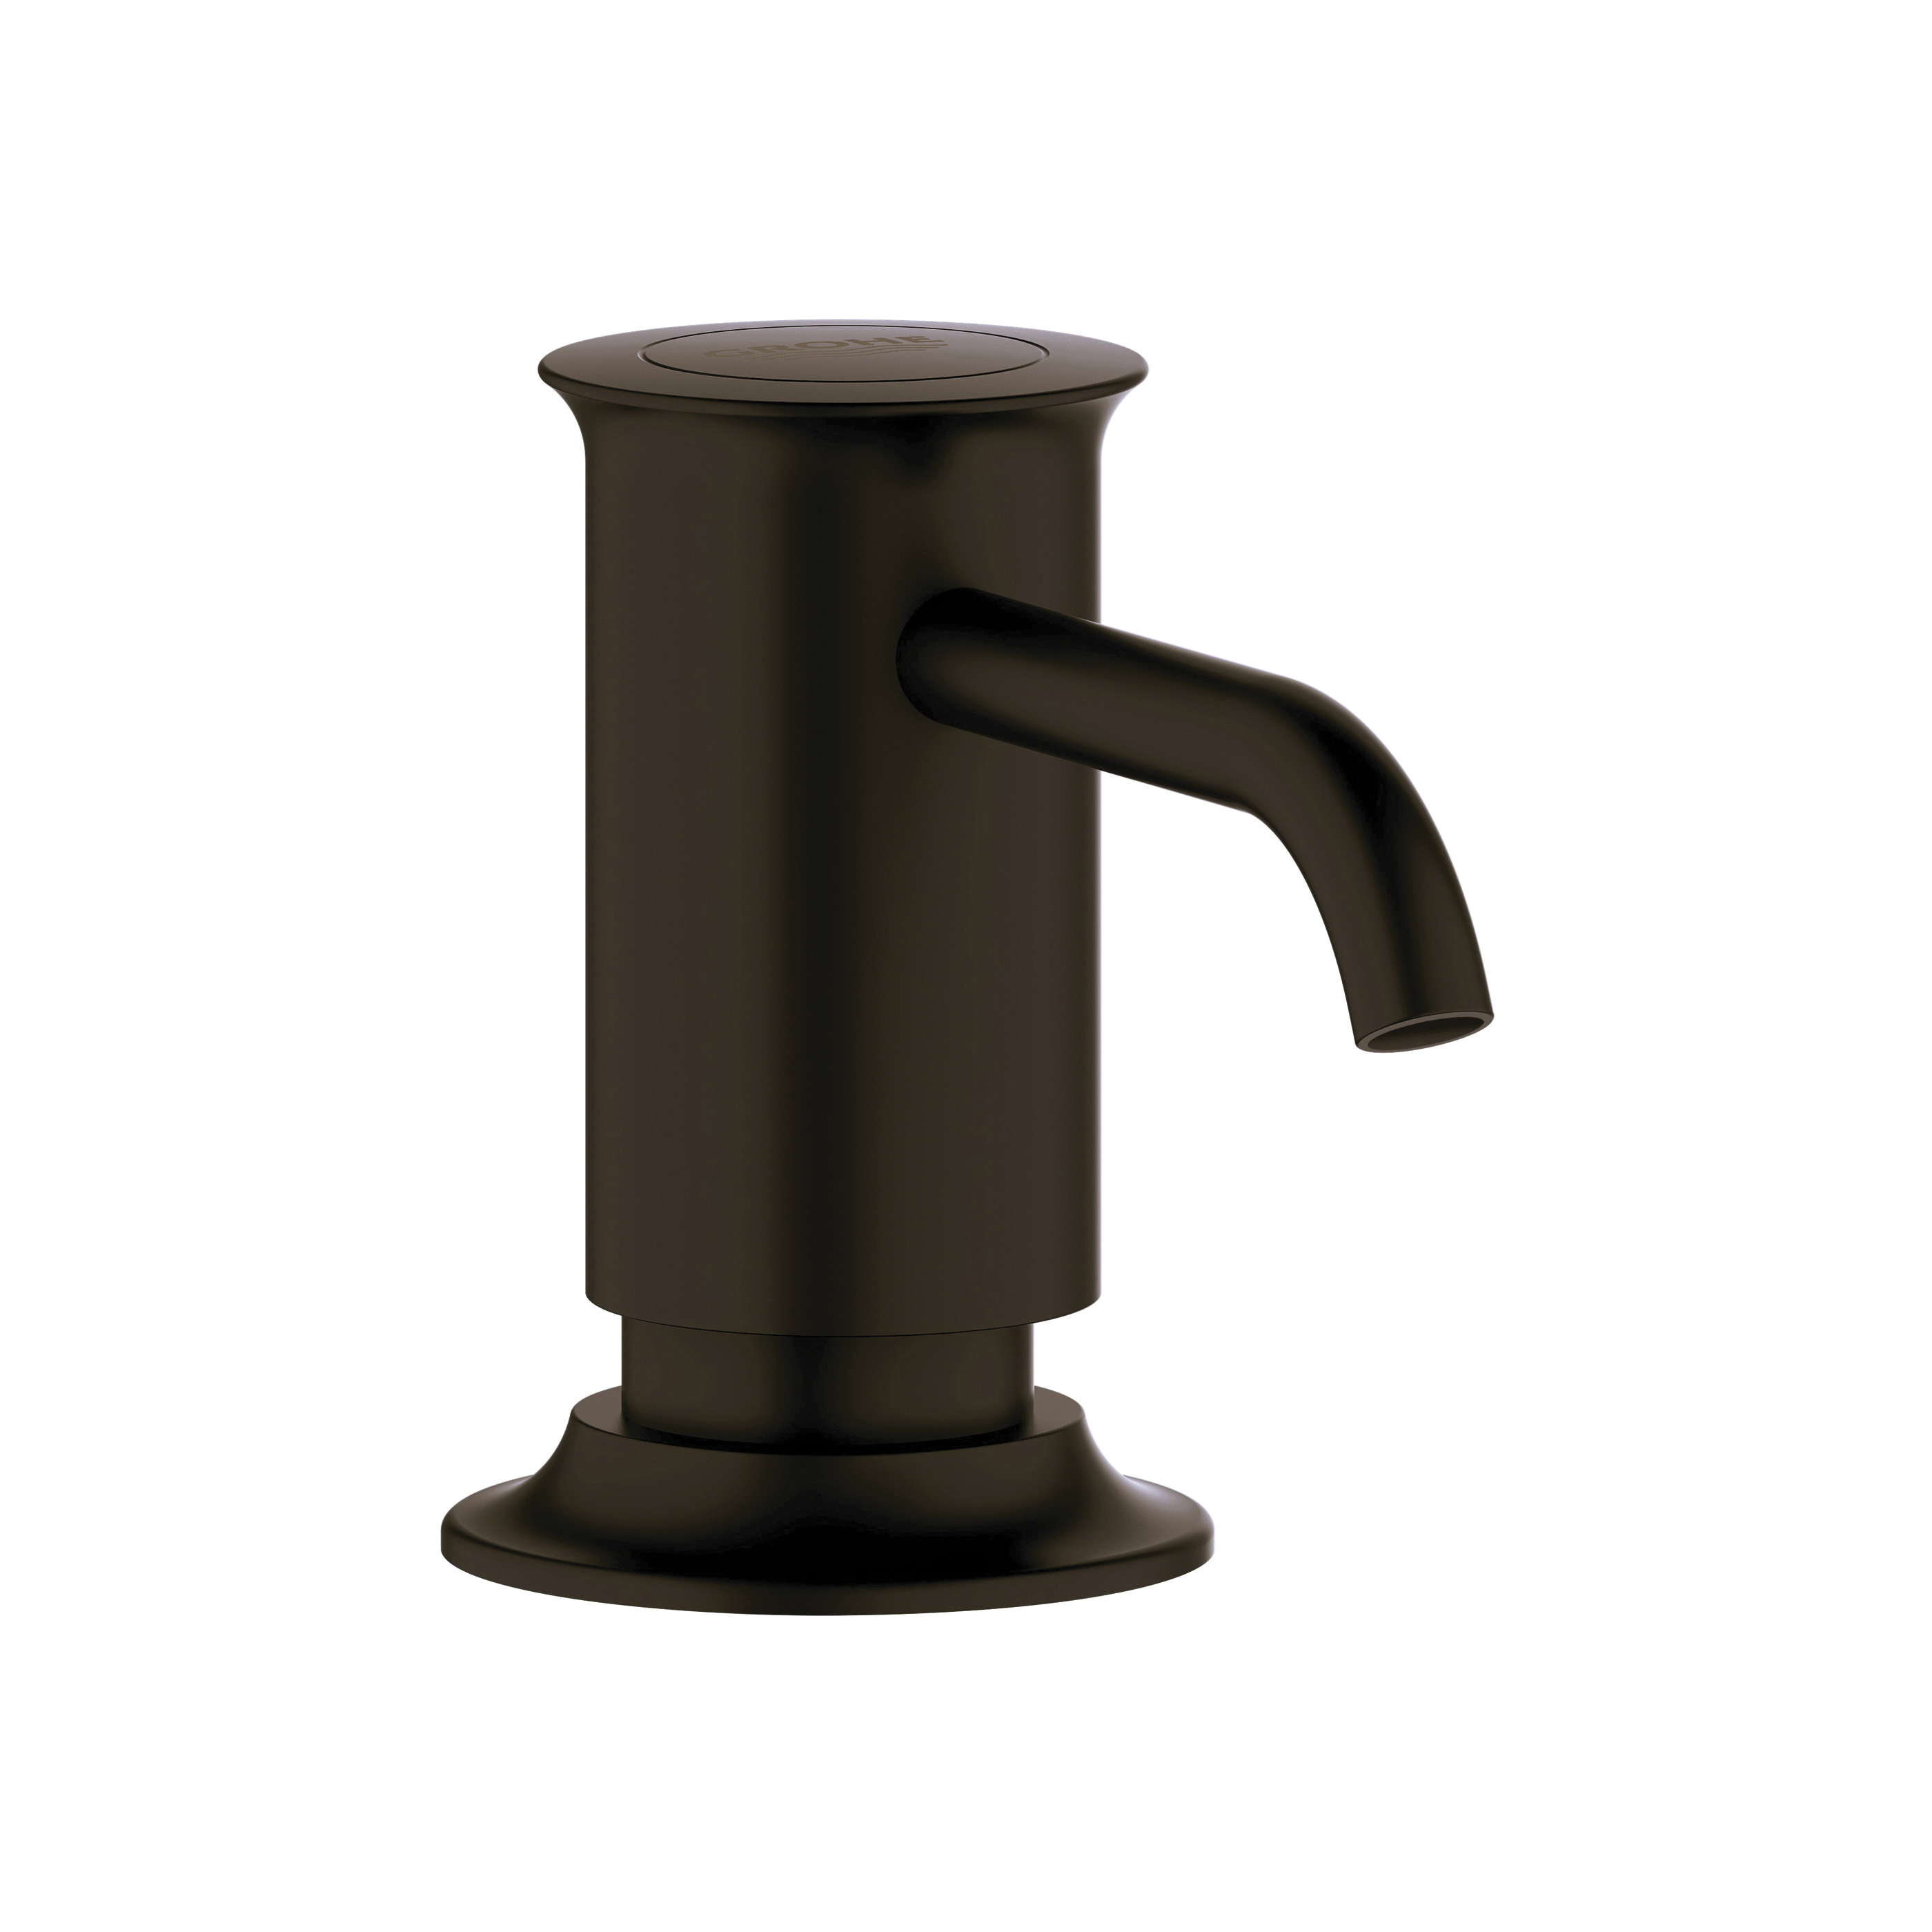 GROHE 40537ZB0 Authentic Soap Dispenser, 15 oz, Deck Mount, Brass, Antique Bronze